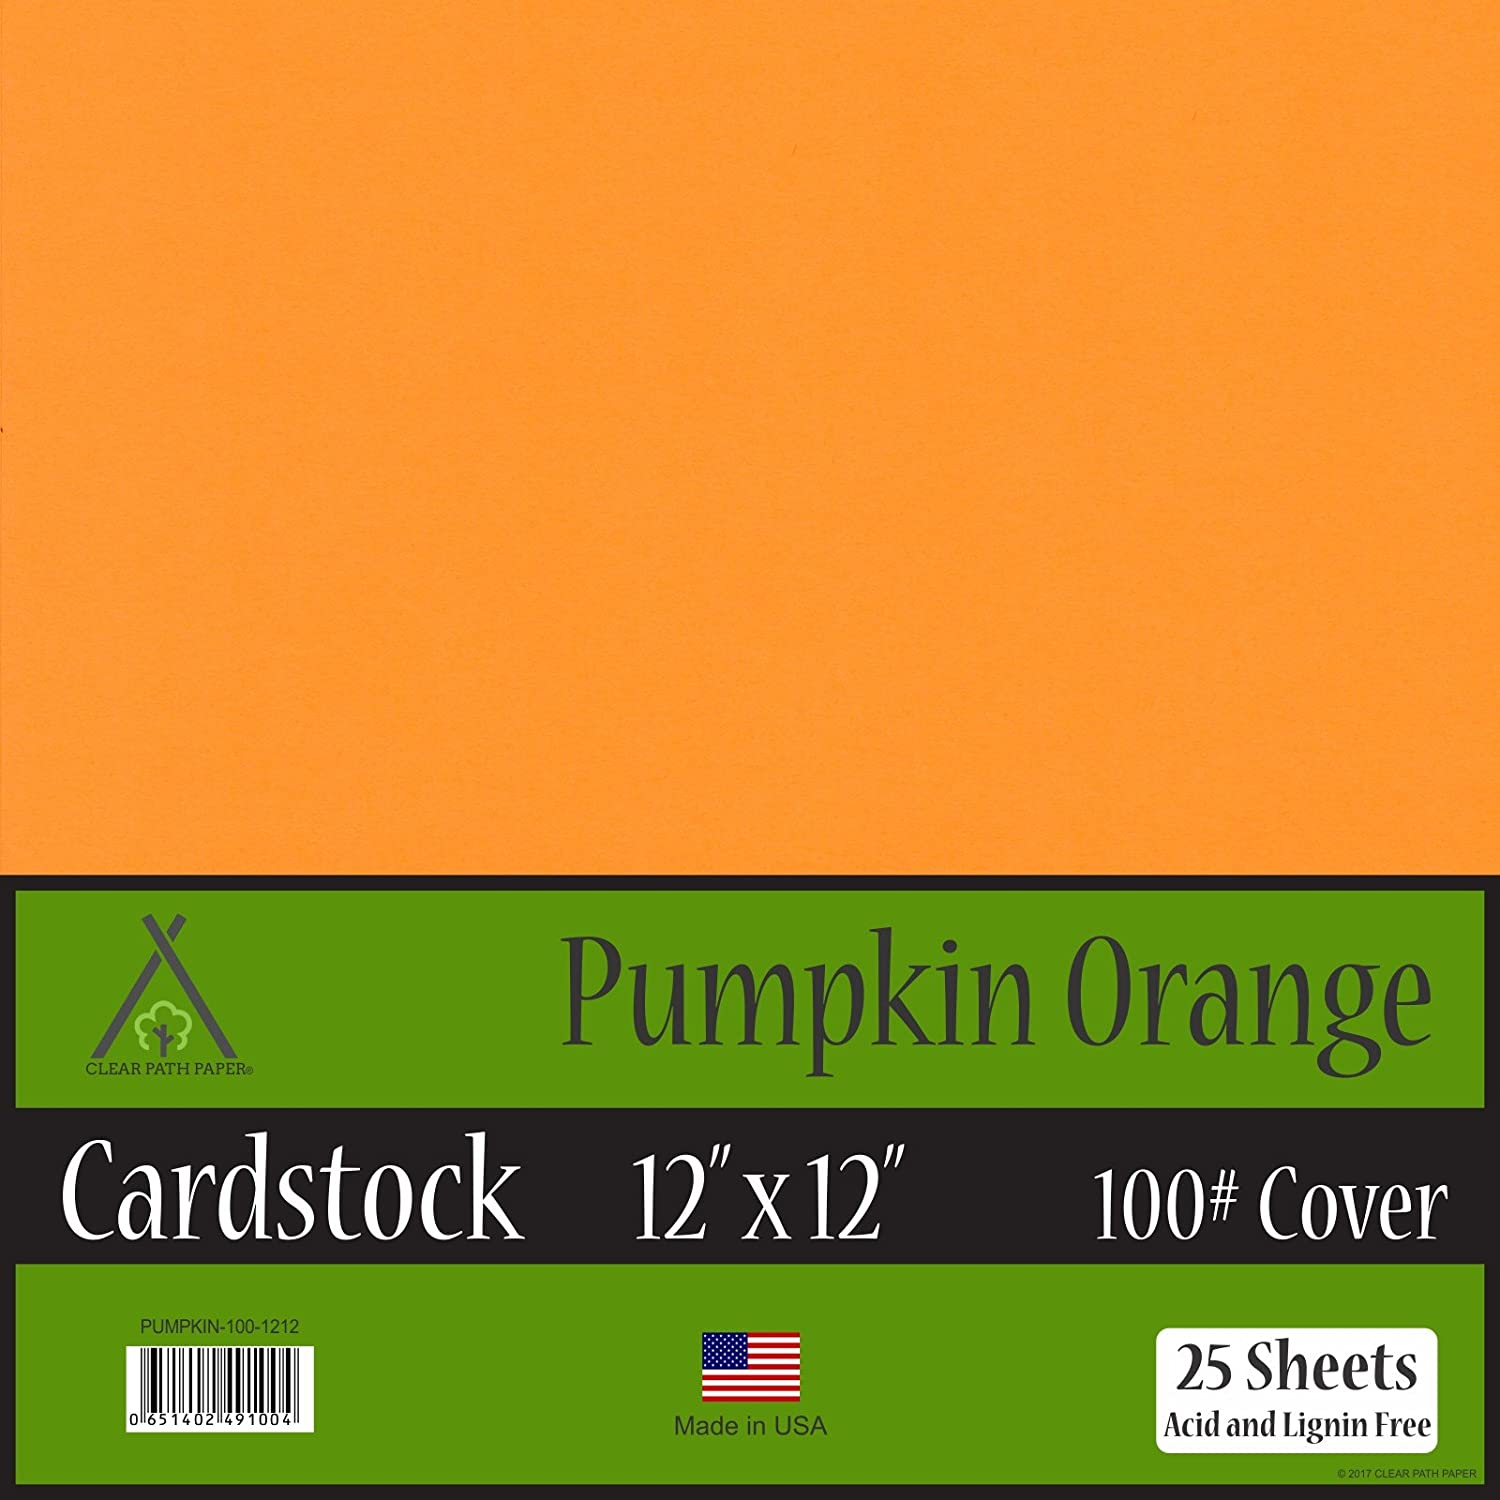 Pumpkin Orange Cardstock - 12 x 12 inch - 100Lb Cover - 25 Sheets Clear Path Paper